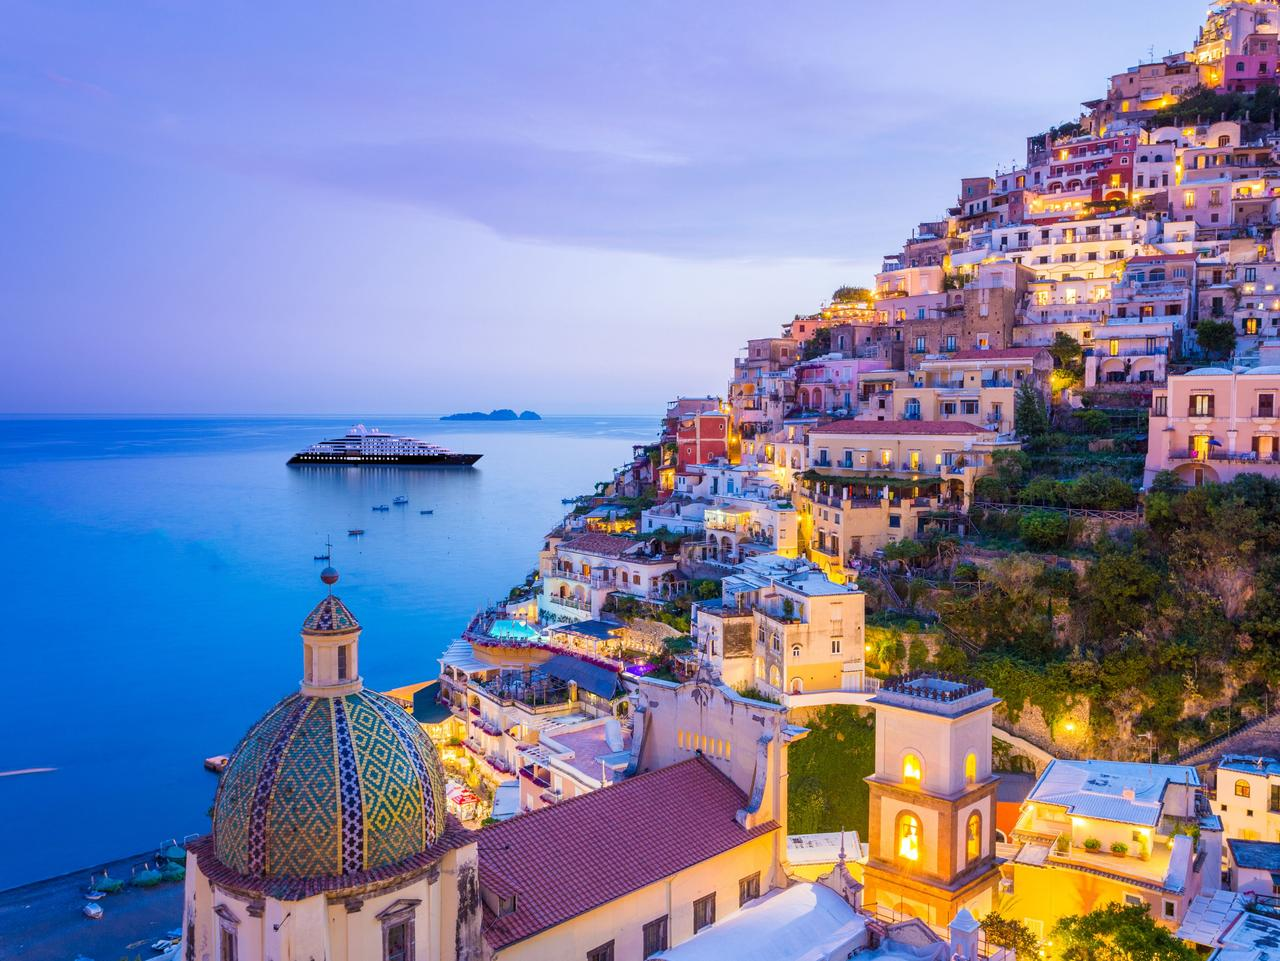 ESCAPE: Cruise cover story, Christine Retschlag, Oct 1 - Scenic Eclipse, Positano, Italy. Picture: Scenic